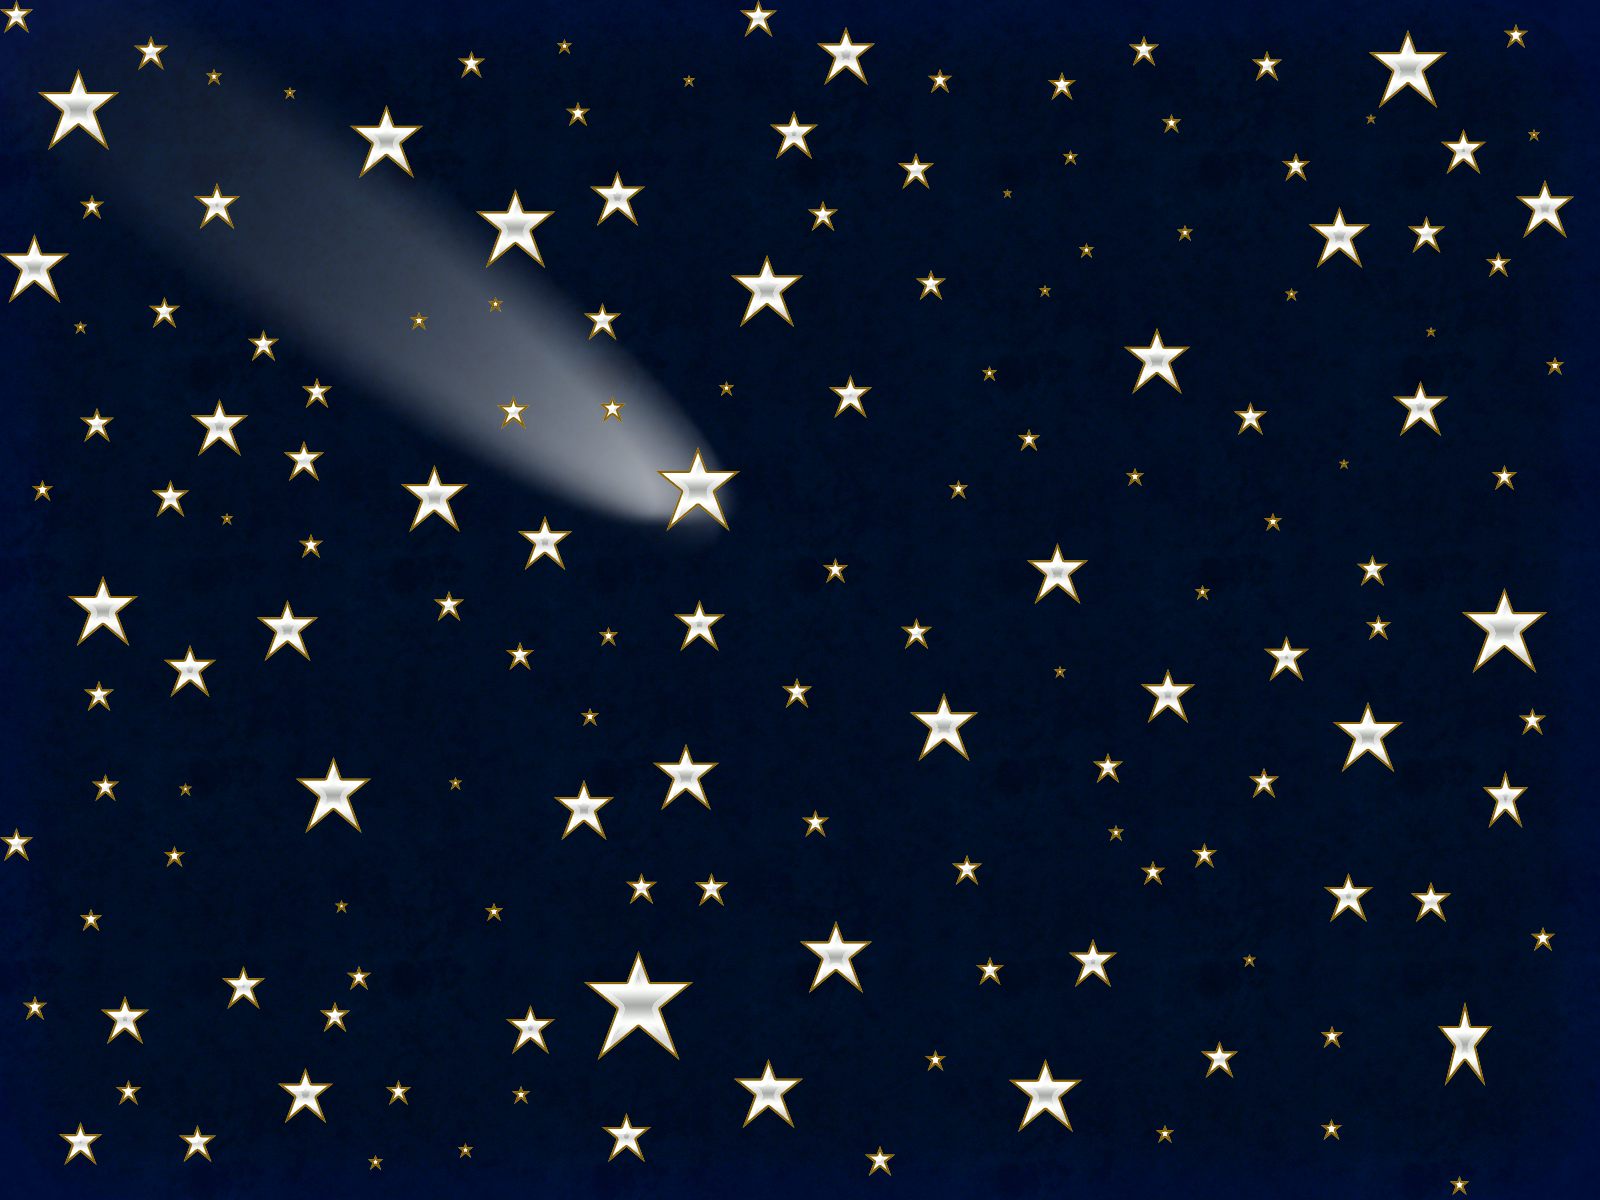 Shooting Star Wallpaper 1600x1200